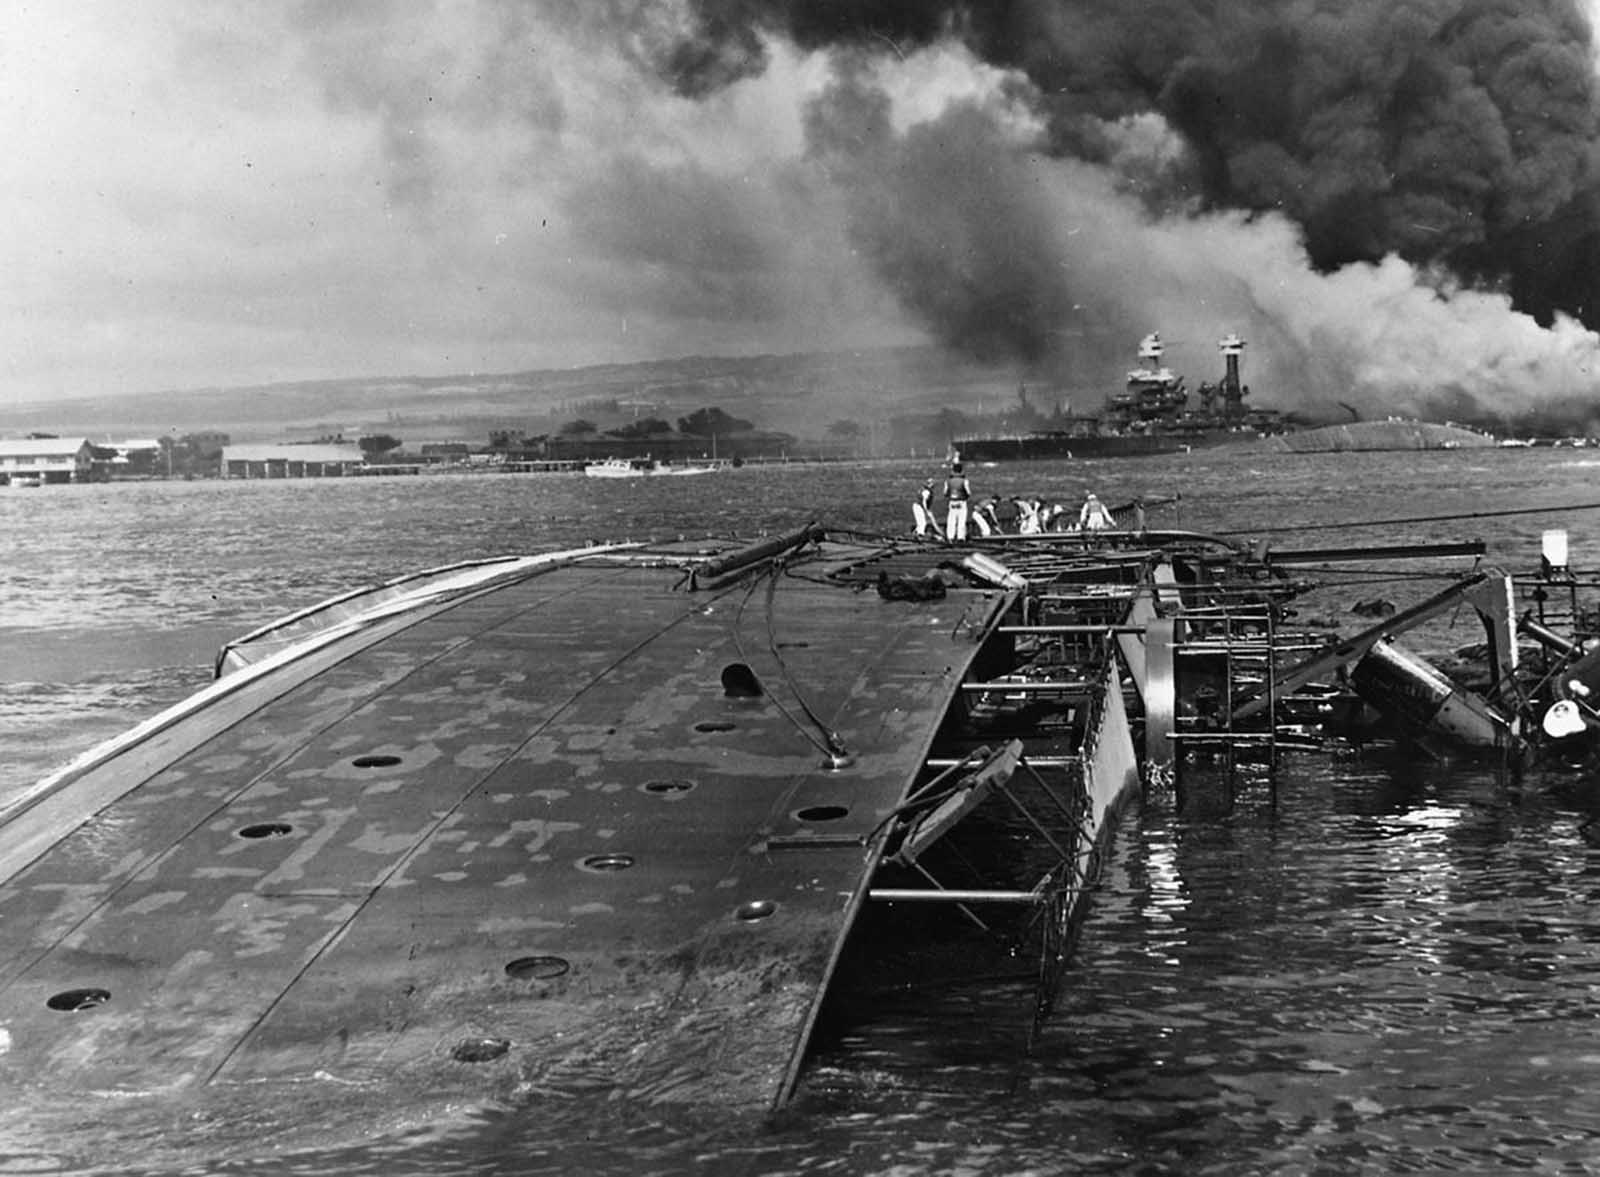 The minelayer USS Oglala lies capsized after being attacked by Japanese aircraft and submarines in the attack on Pearl Harbor.